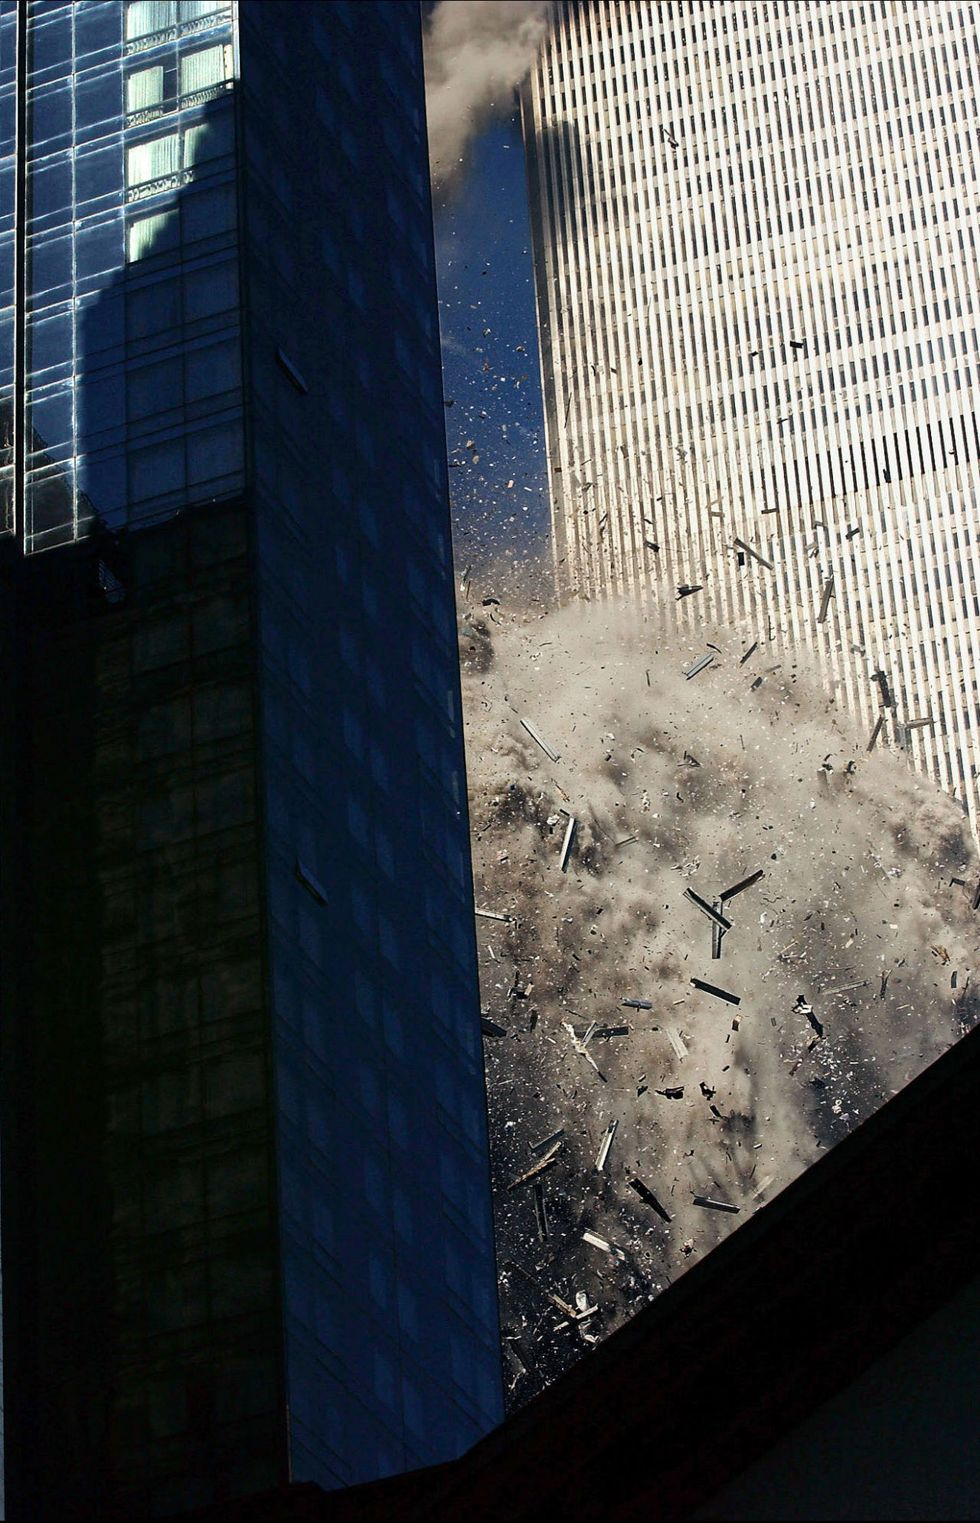 My Escape From the 81st Floor of the World Trade Center